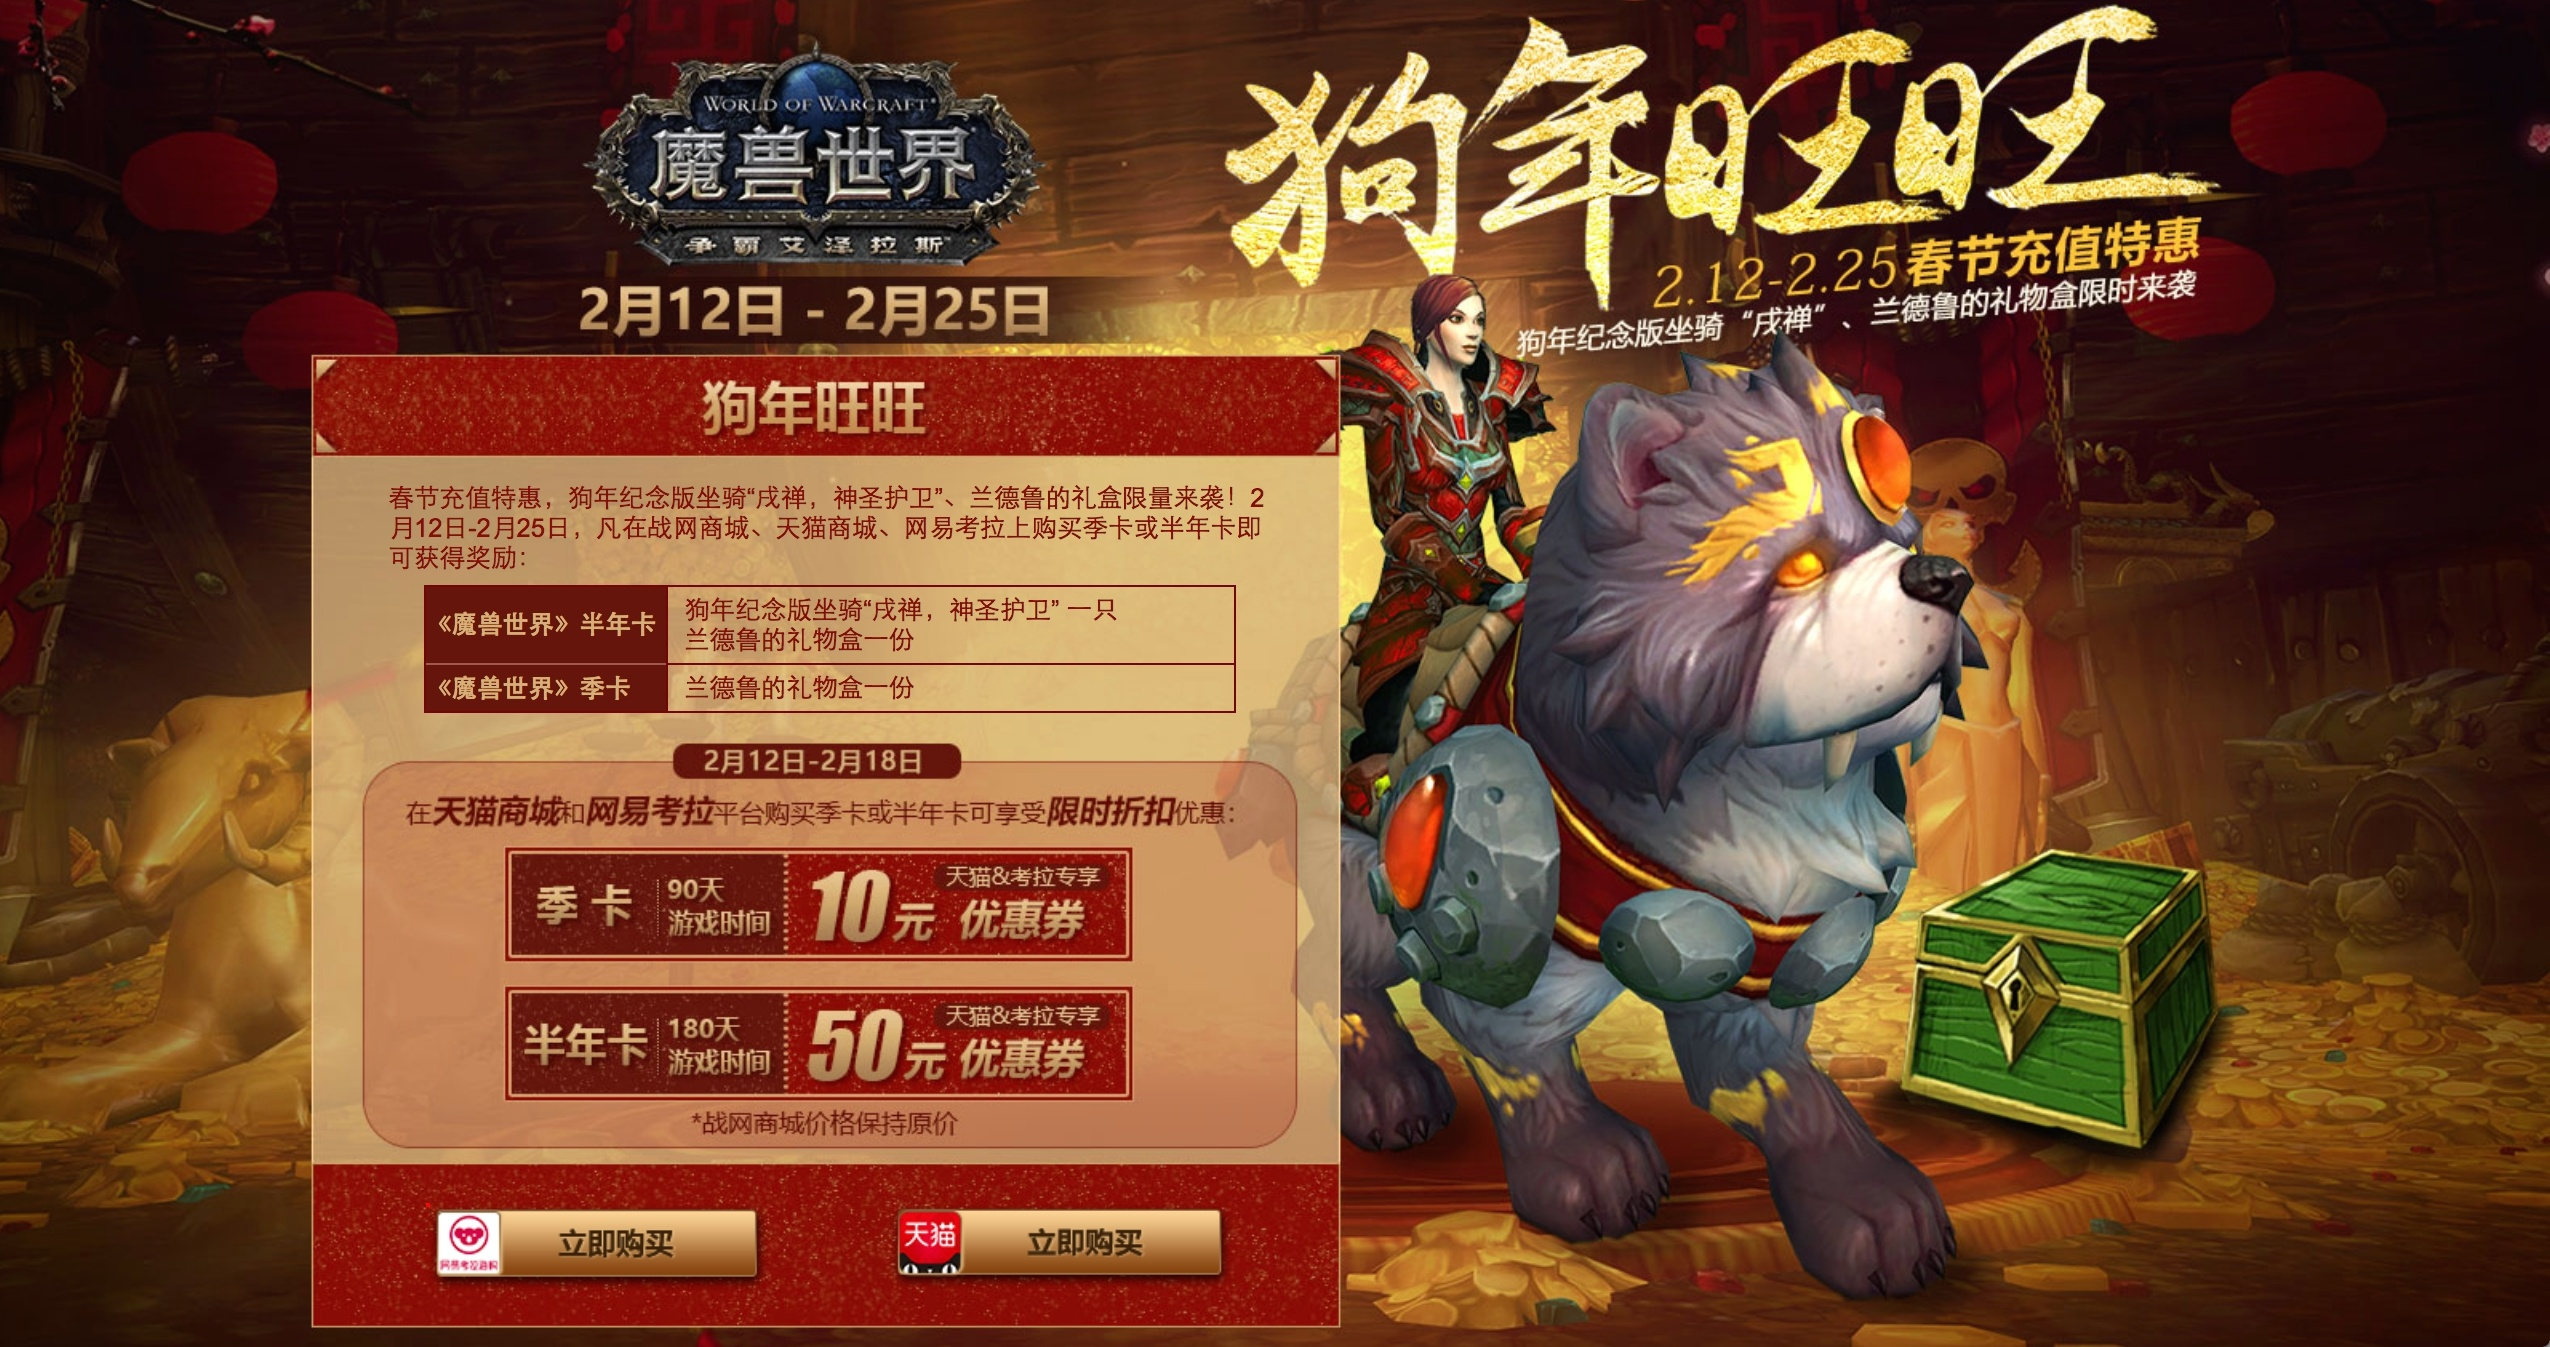 Shu-zen Mount - Lunar New Year Gift for 6 Months of Game Time on